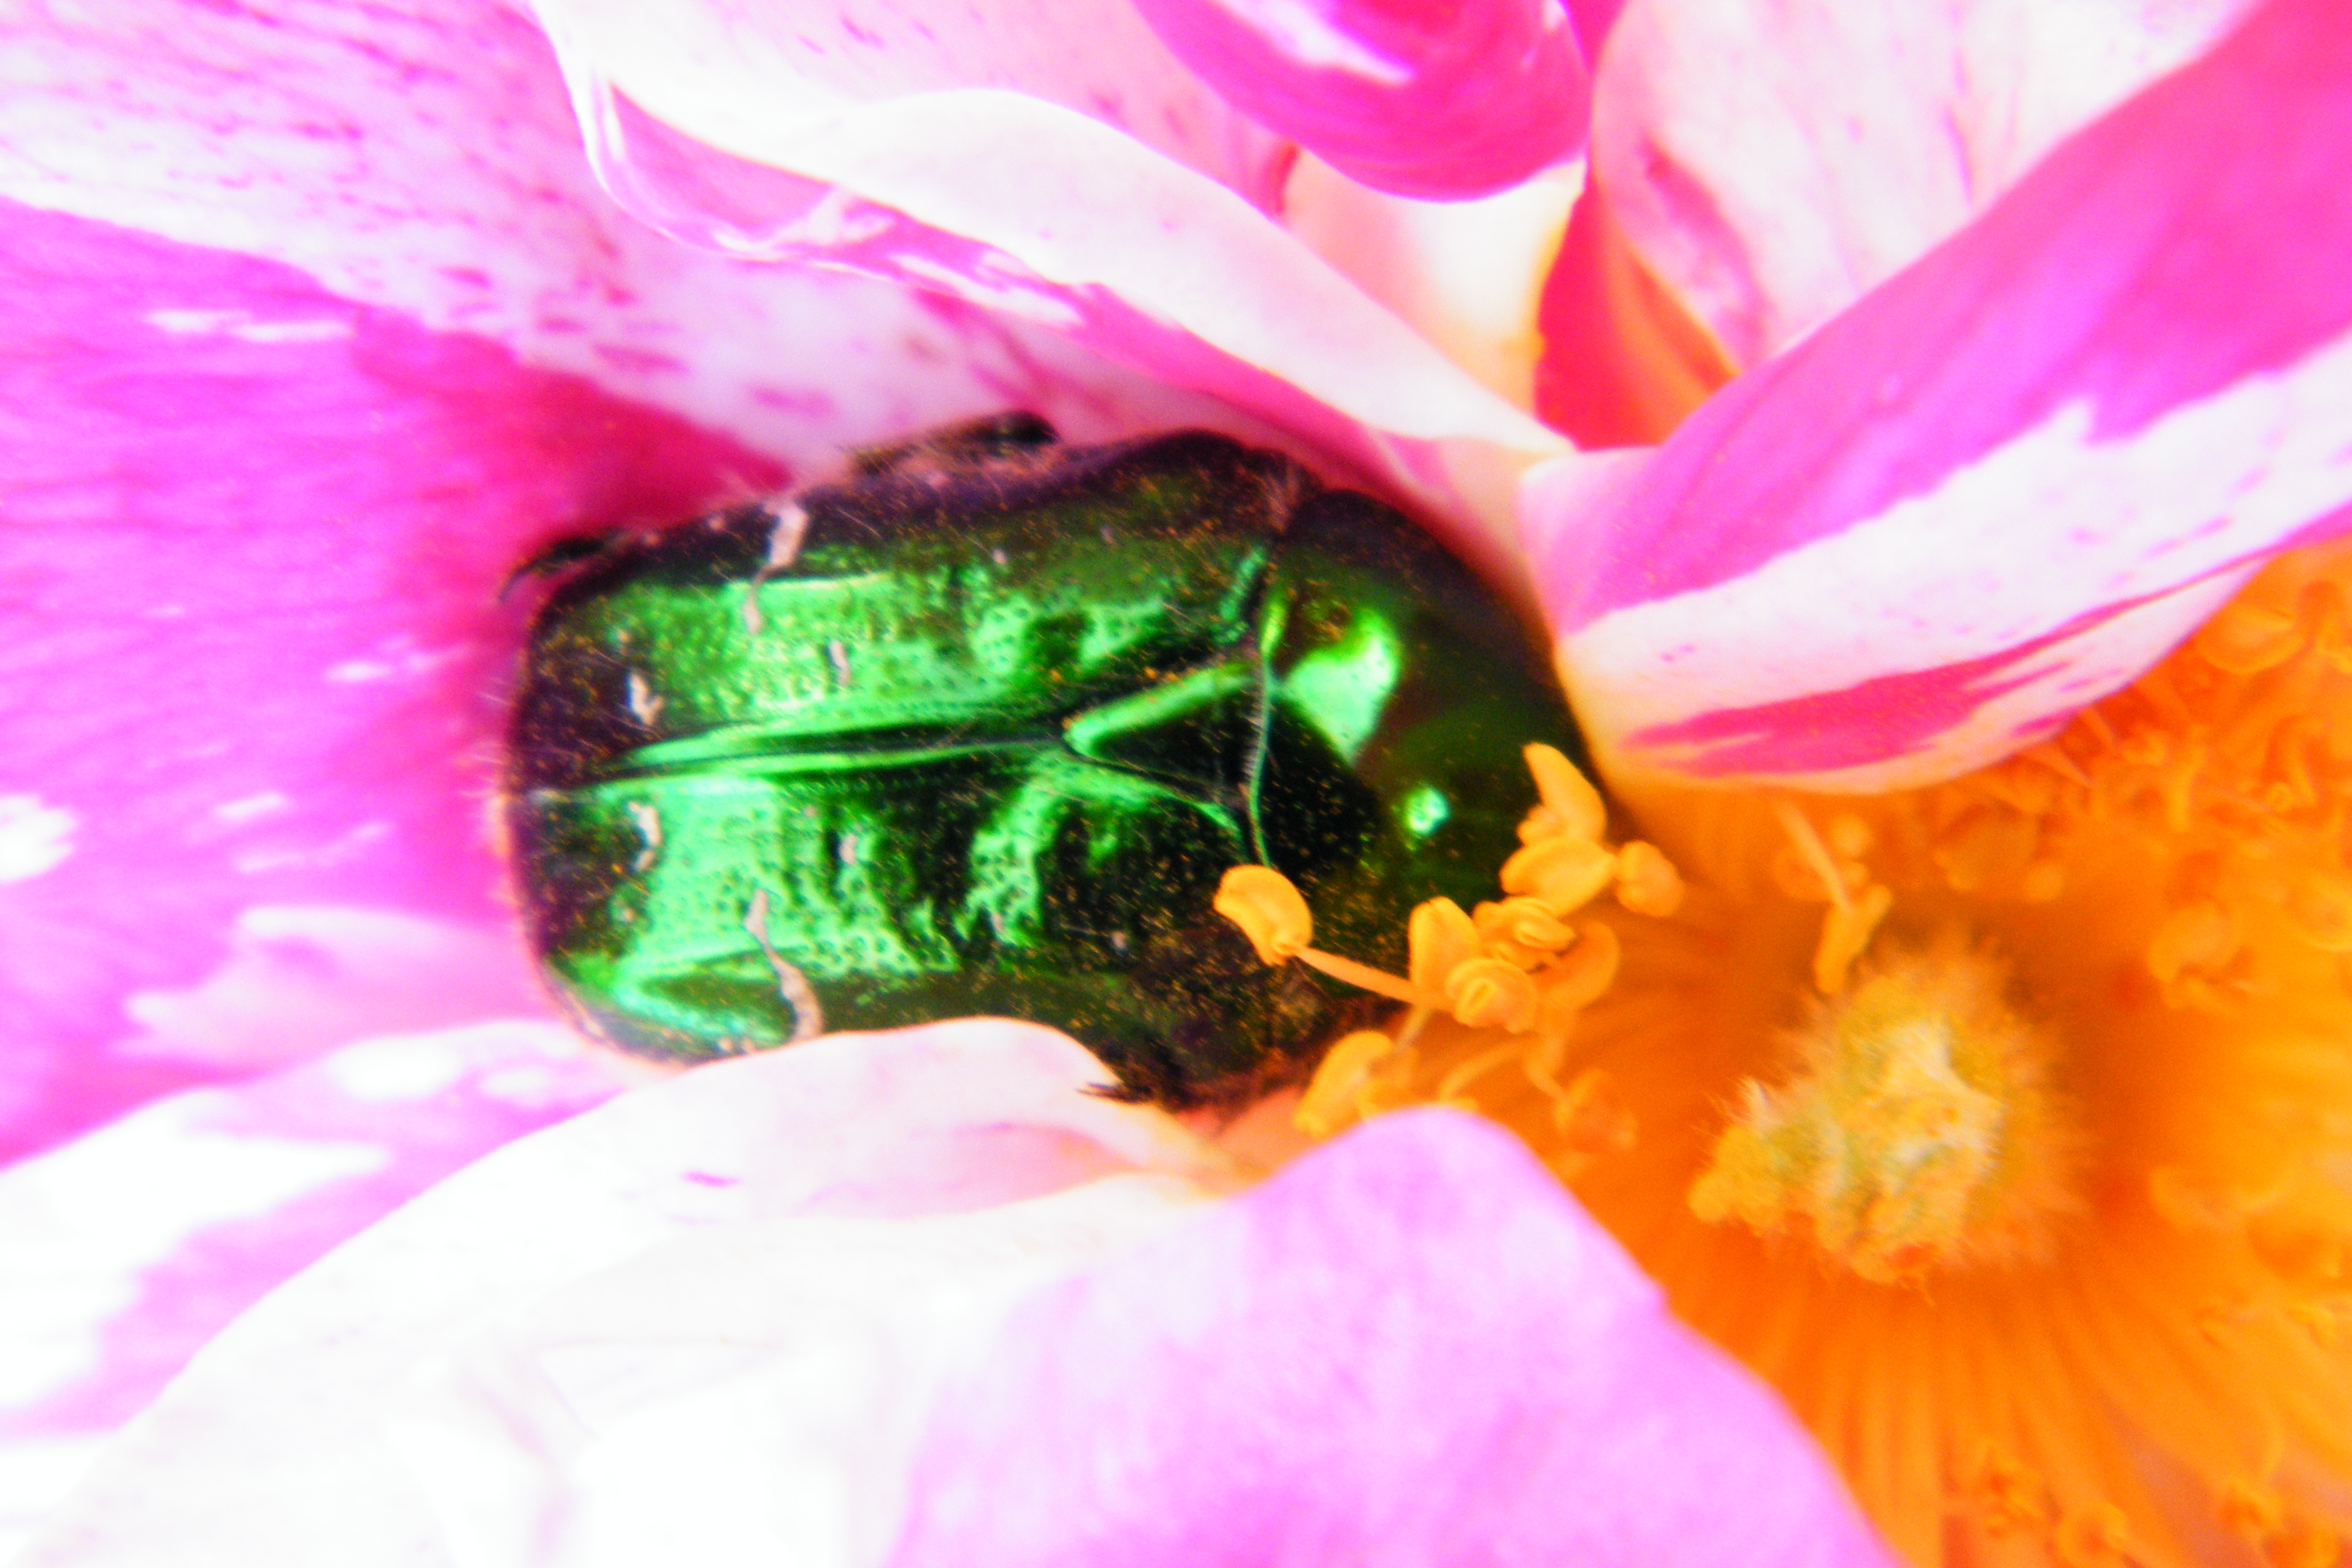 rose chafer beetle rose petals